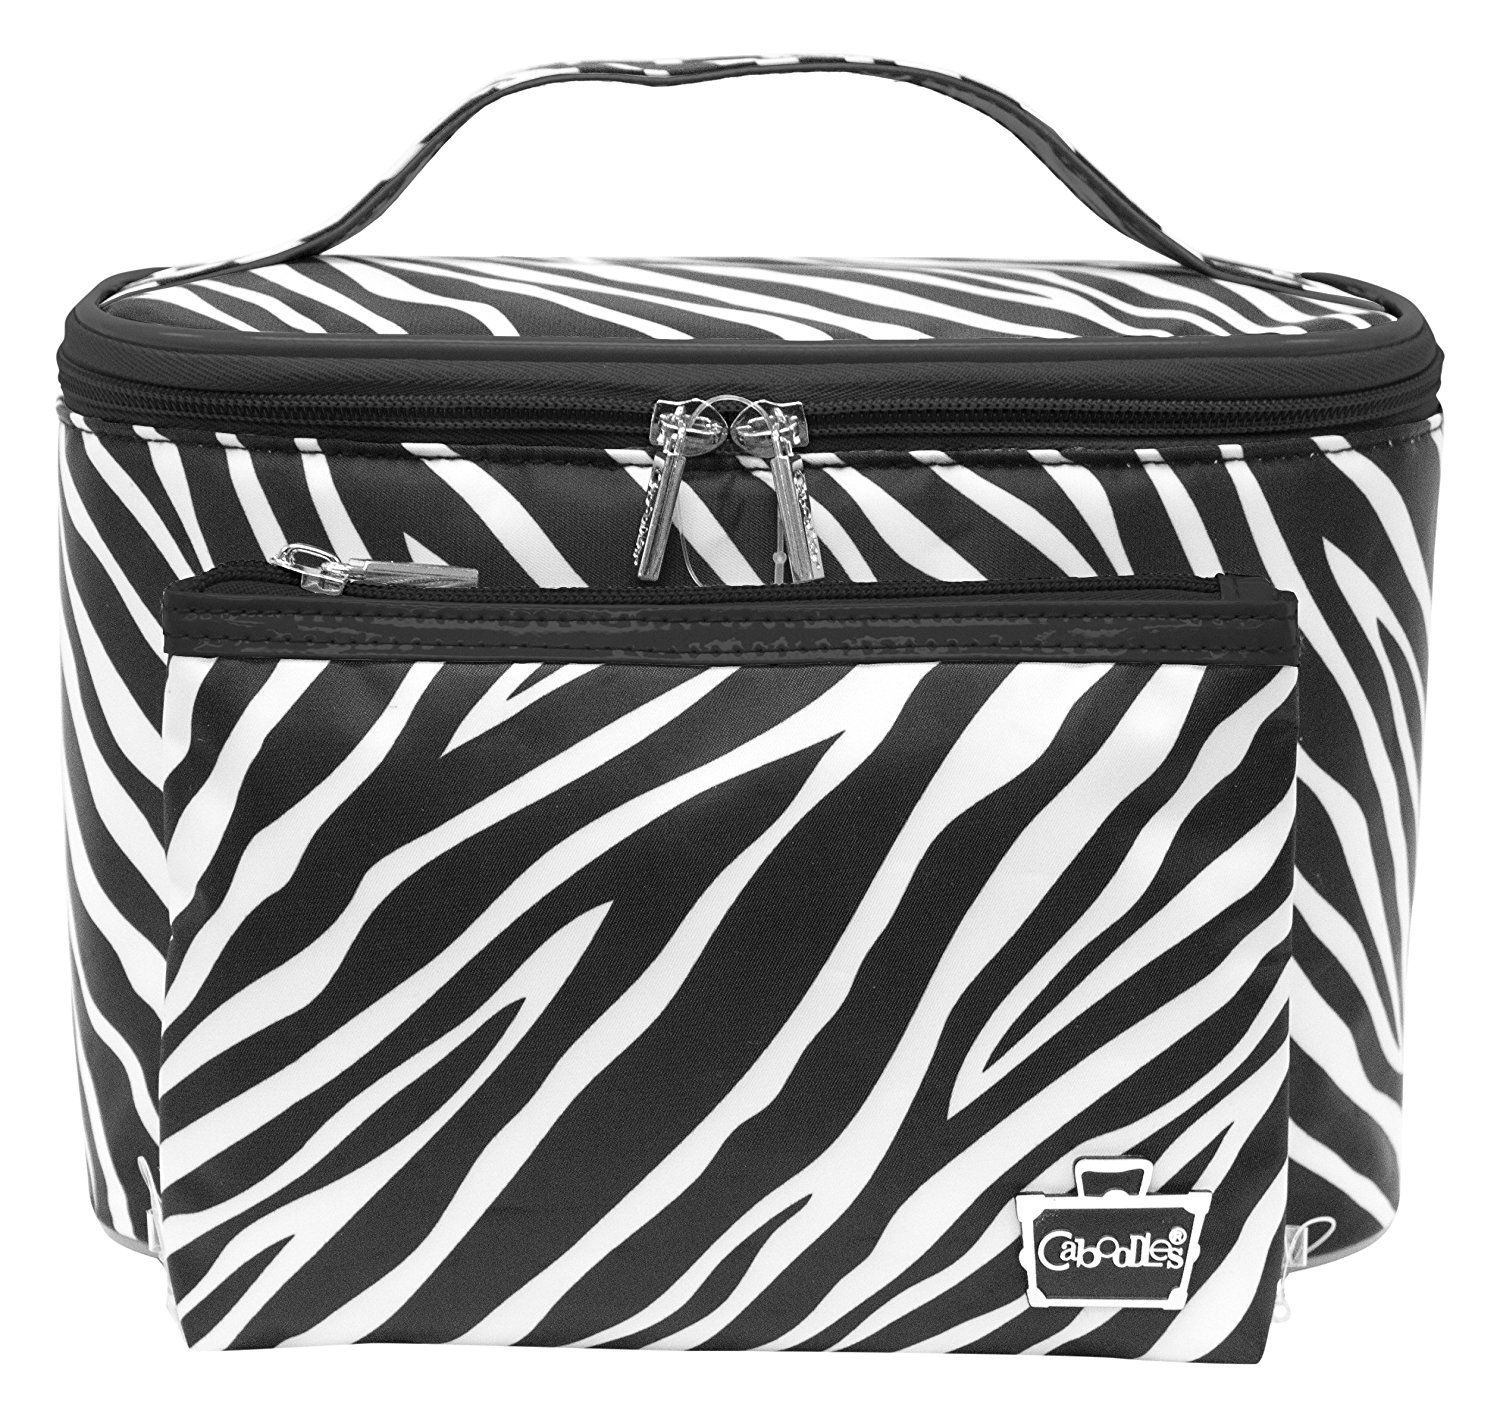 Caboodles Sweet And Sassy Large Tapered Tote, Zebra, 129 Pound